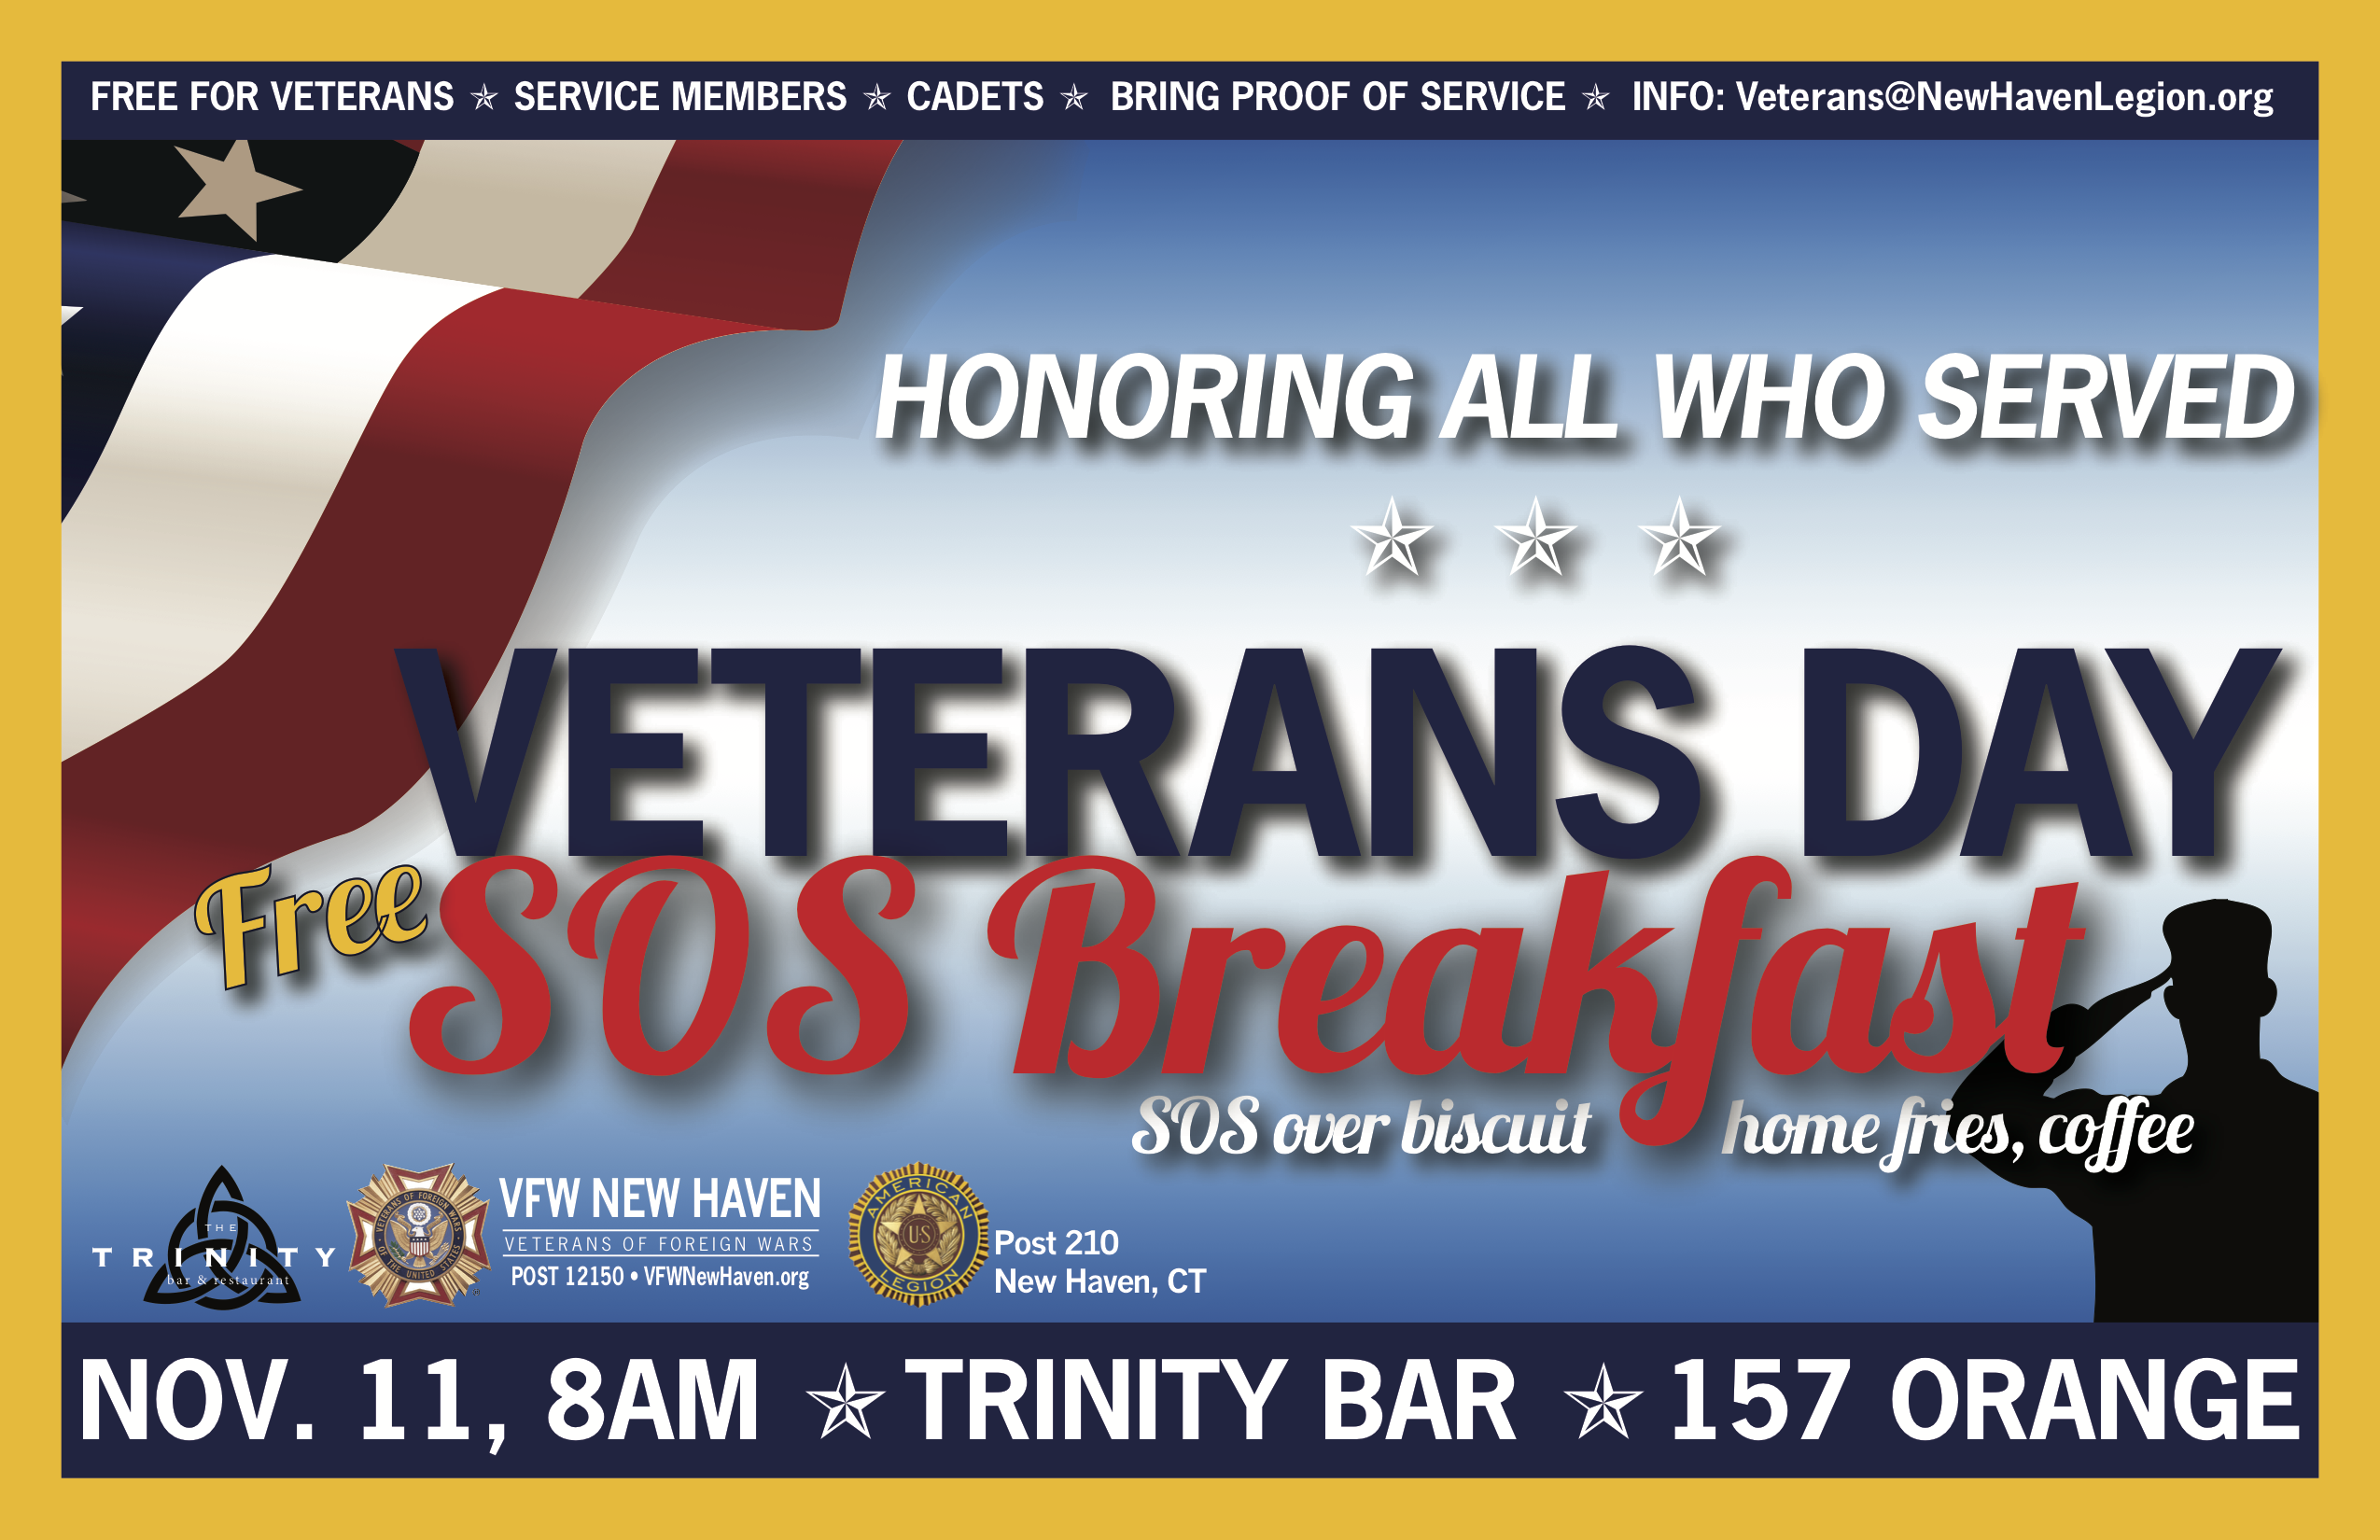 2019 Veterans Day FREE SOS Breakfast